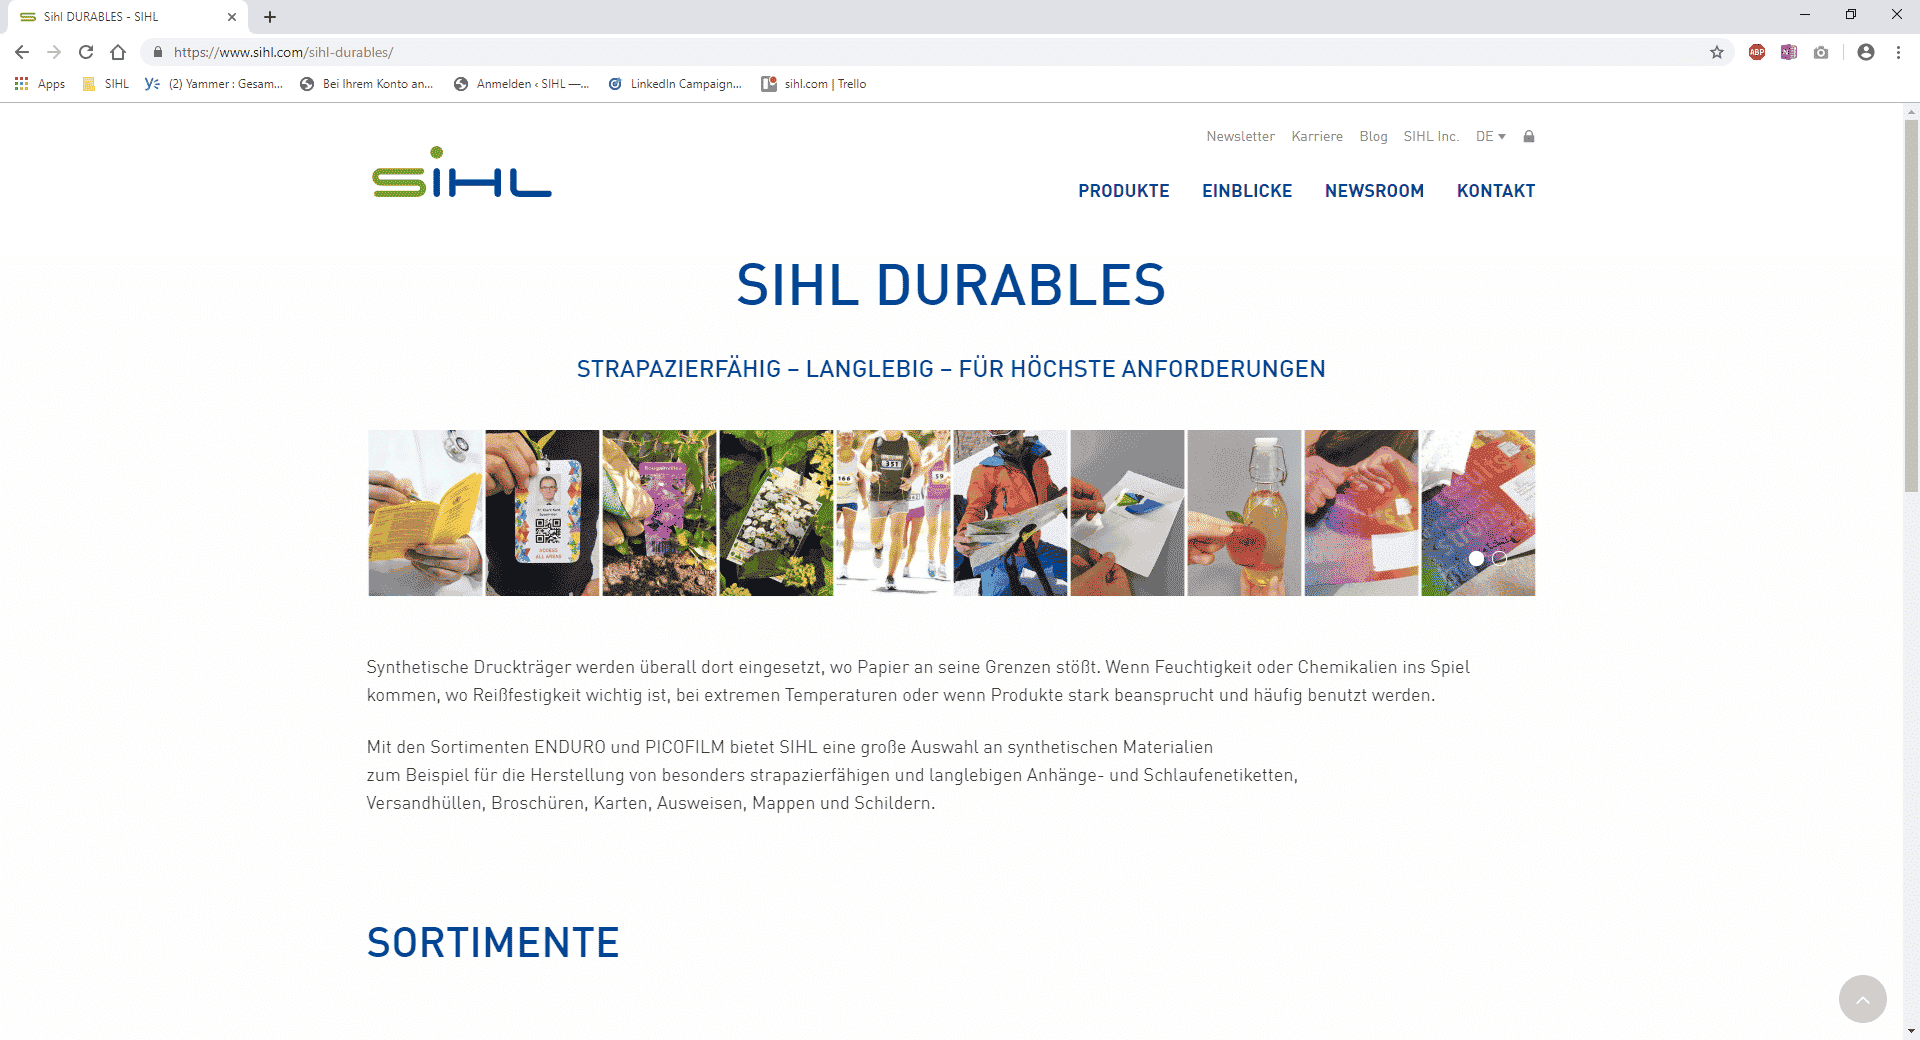 SIHL DURABLES: Hard-wearing, long-lasting, for demanding applications